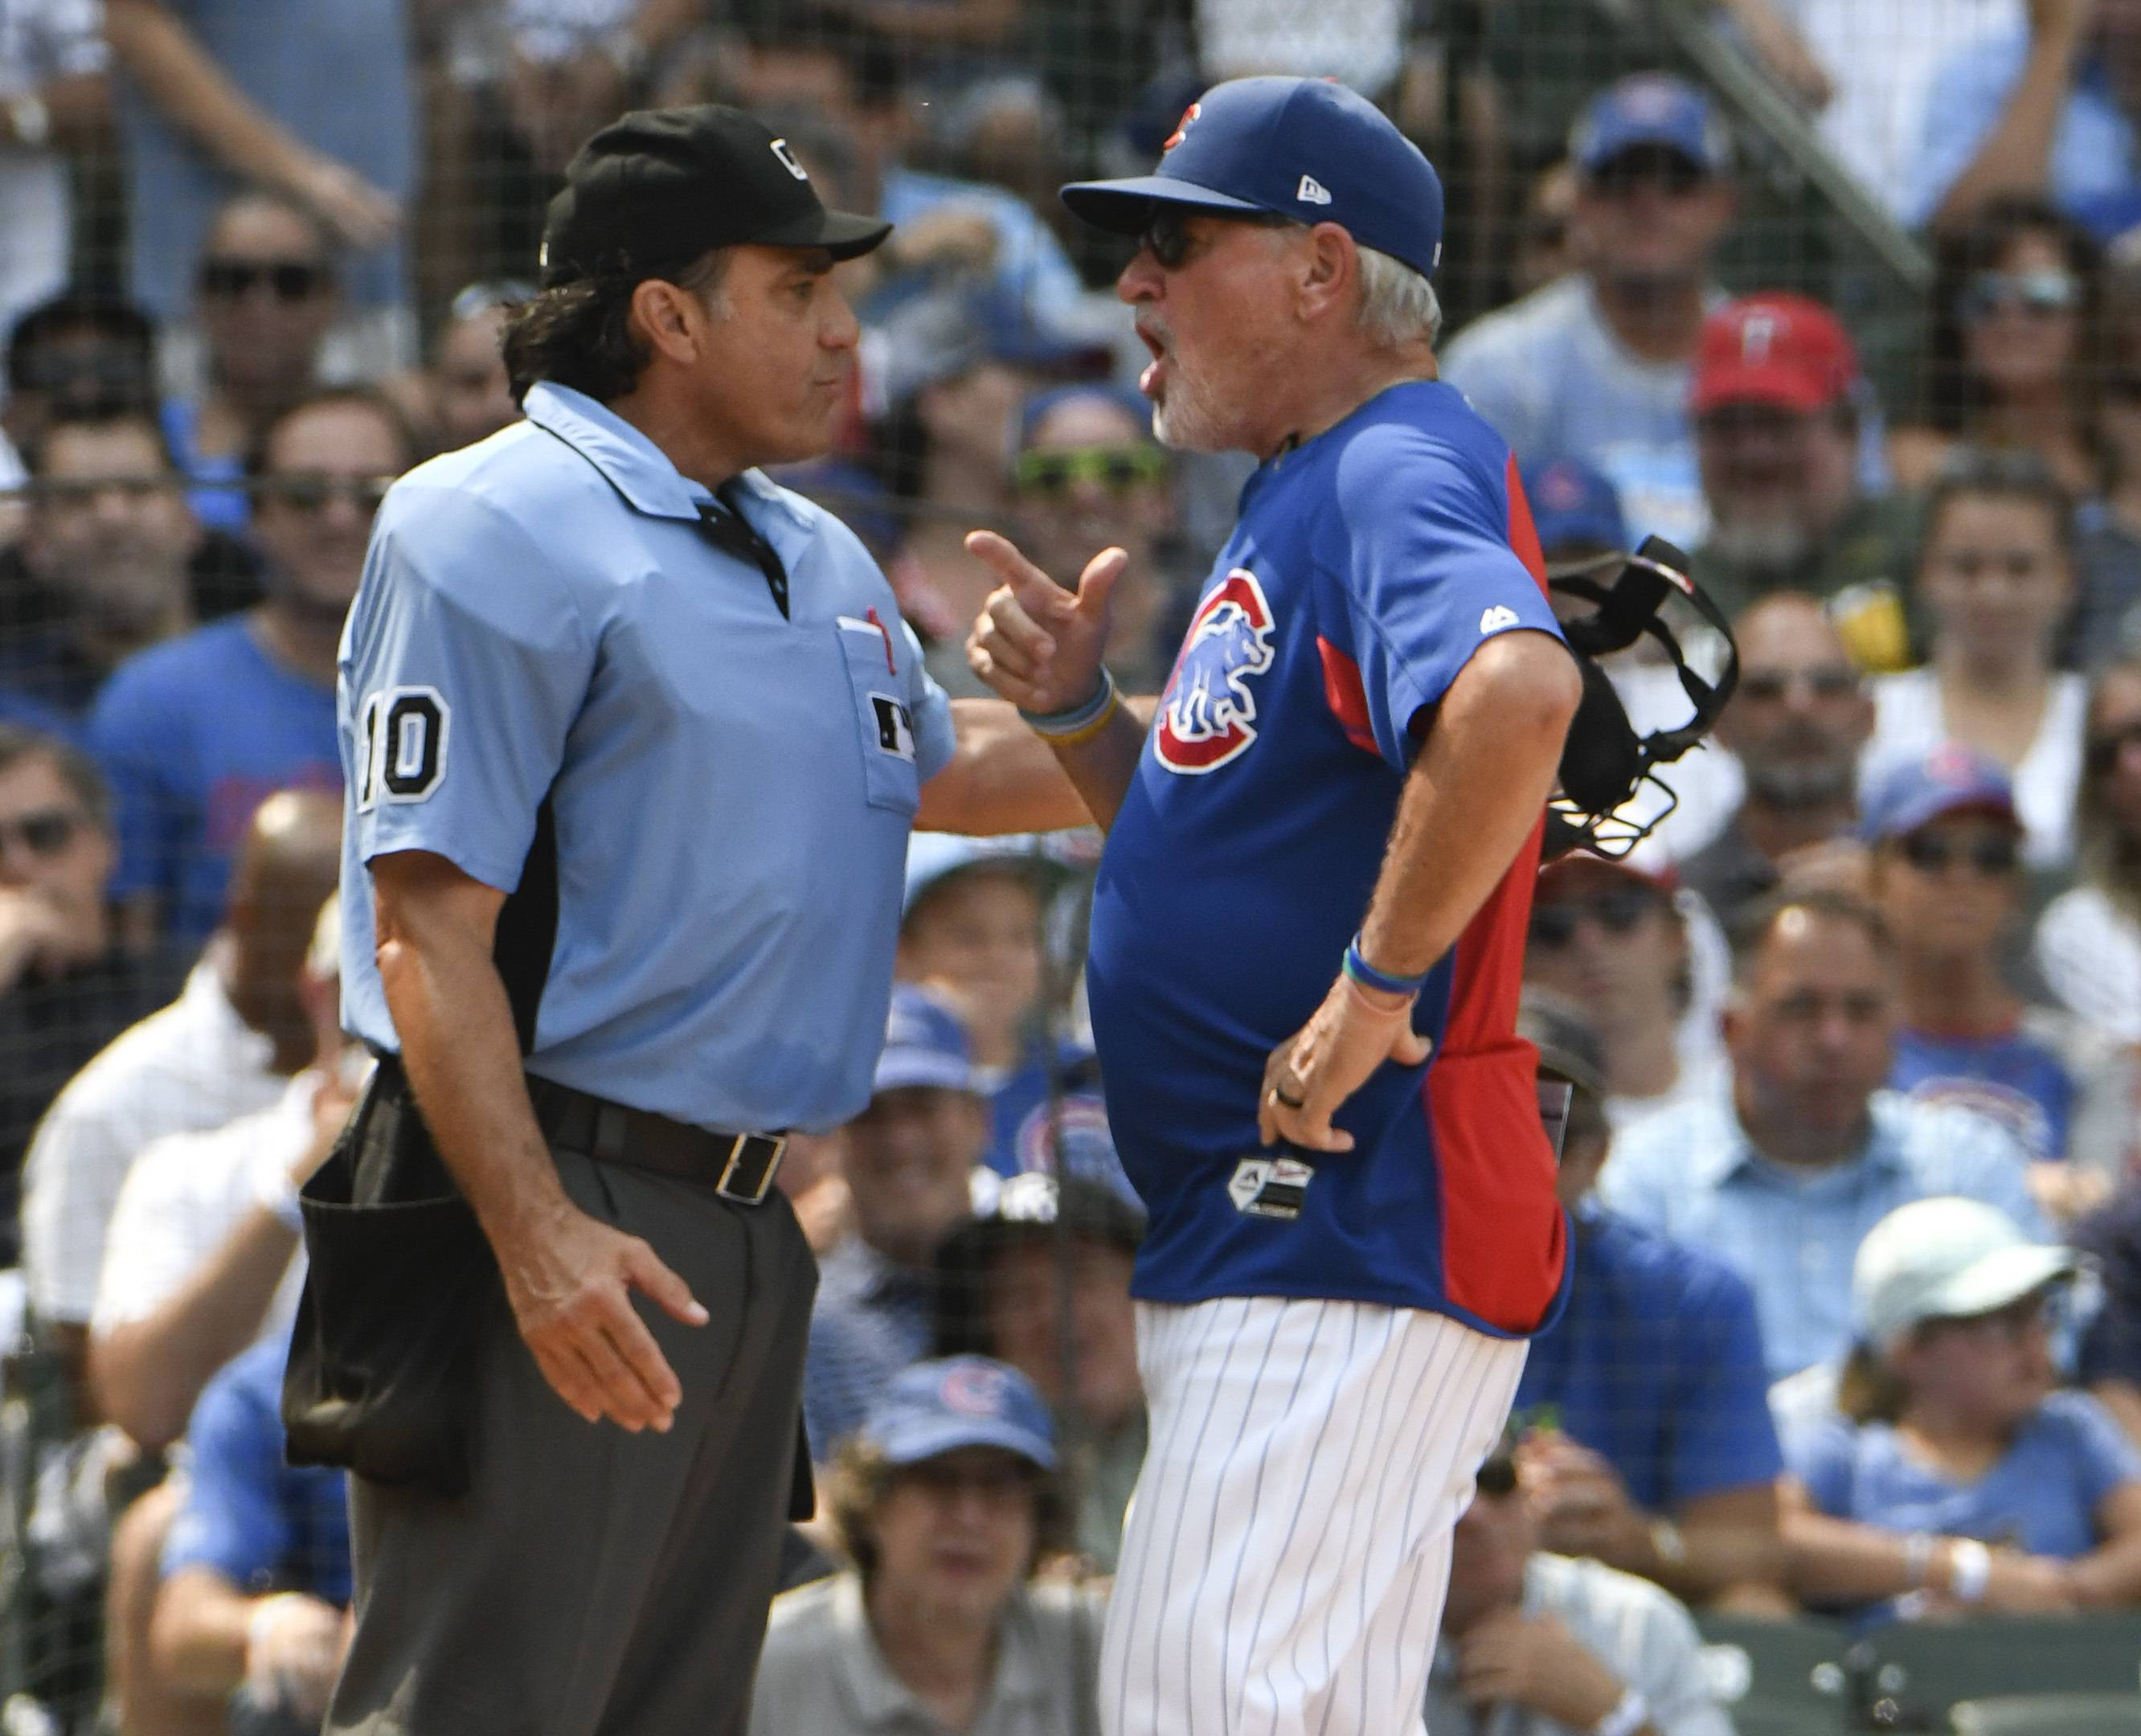 Chicago Cubs manager Joe Maddon, right, argues a call with umpire Phil Cuzzi during the sixth inning Tuesday in Chicago.